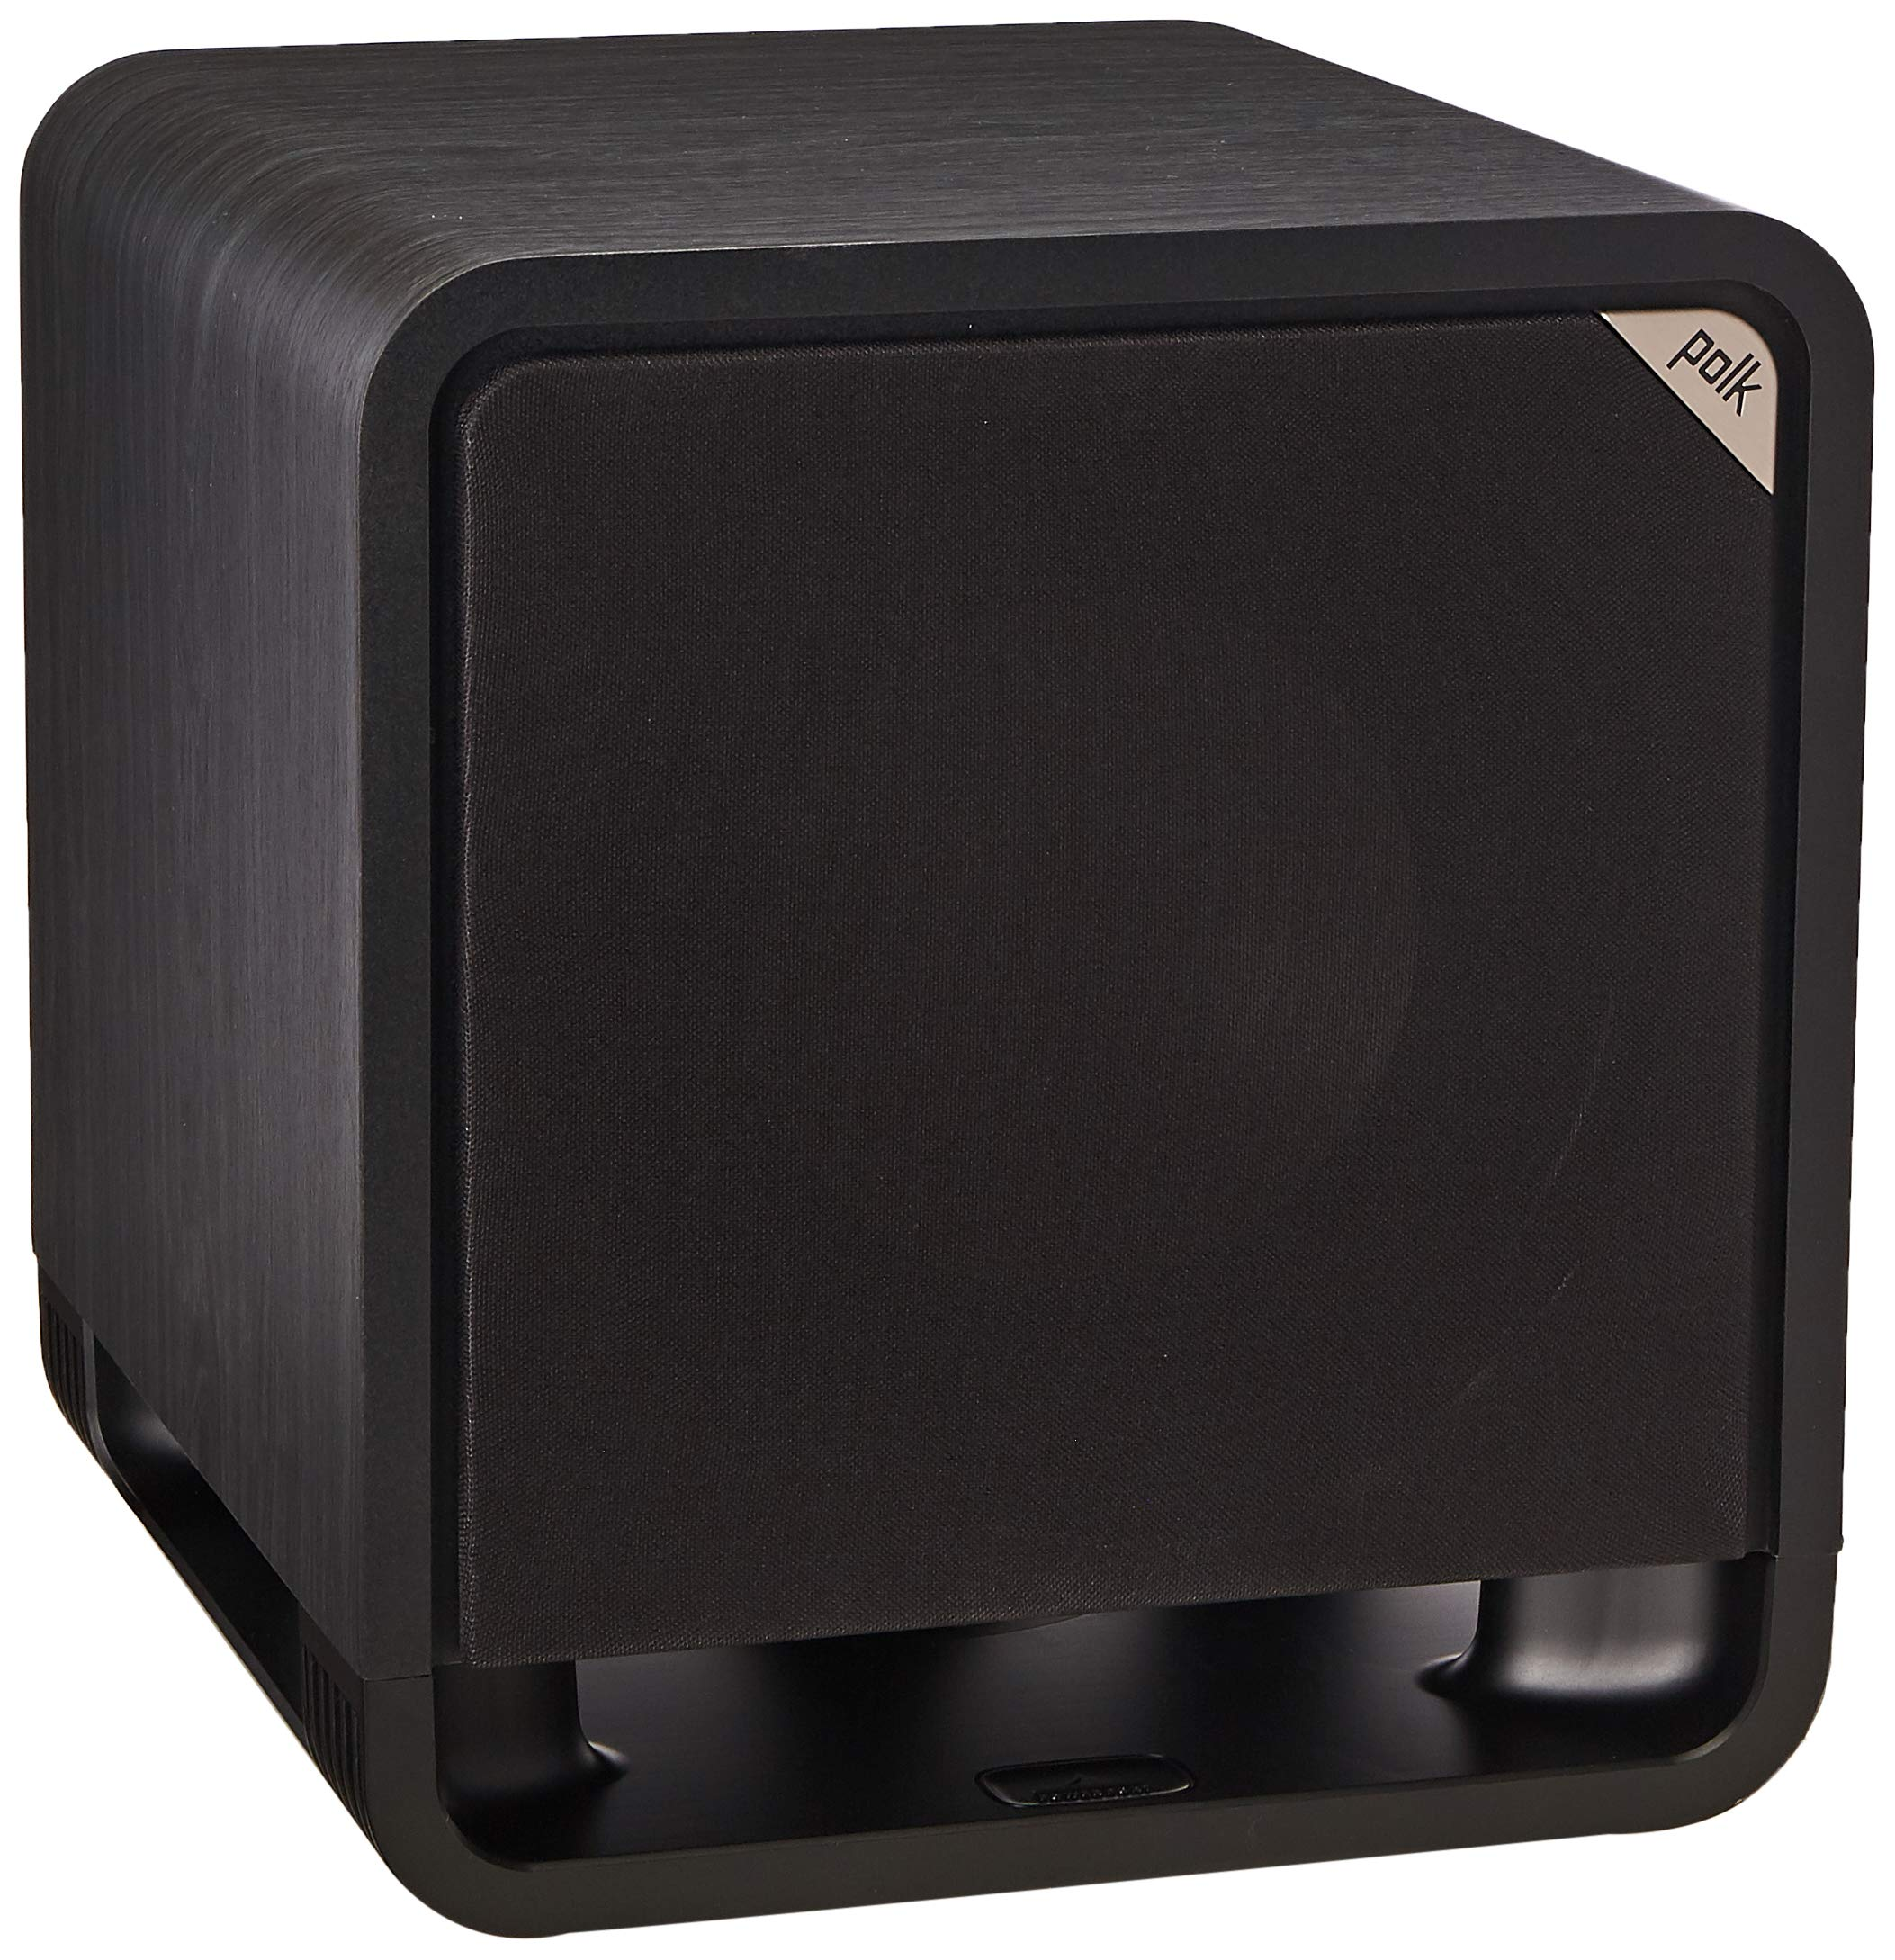 "Polk Audio HTS 10 Powered Subwoofer with Power Port Technology | 10"" Woofer, up to 200W Amp 